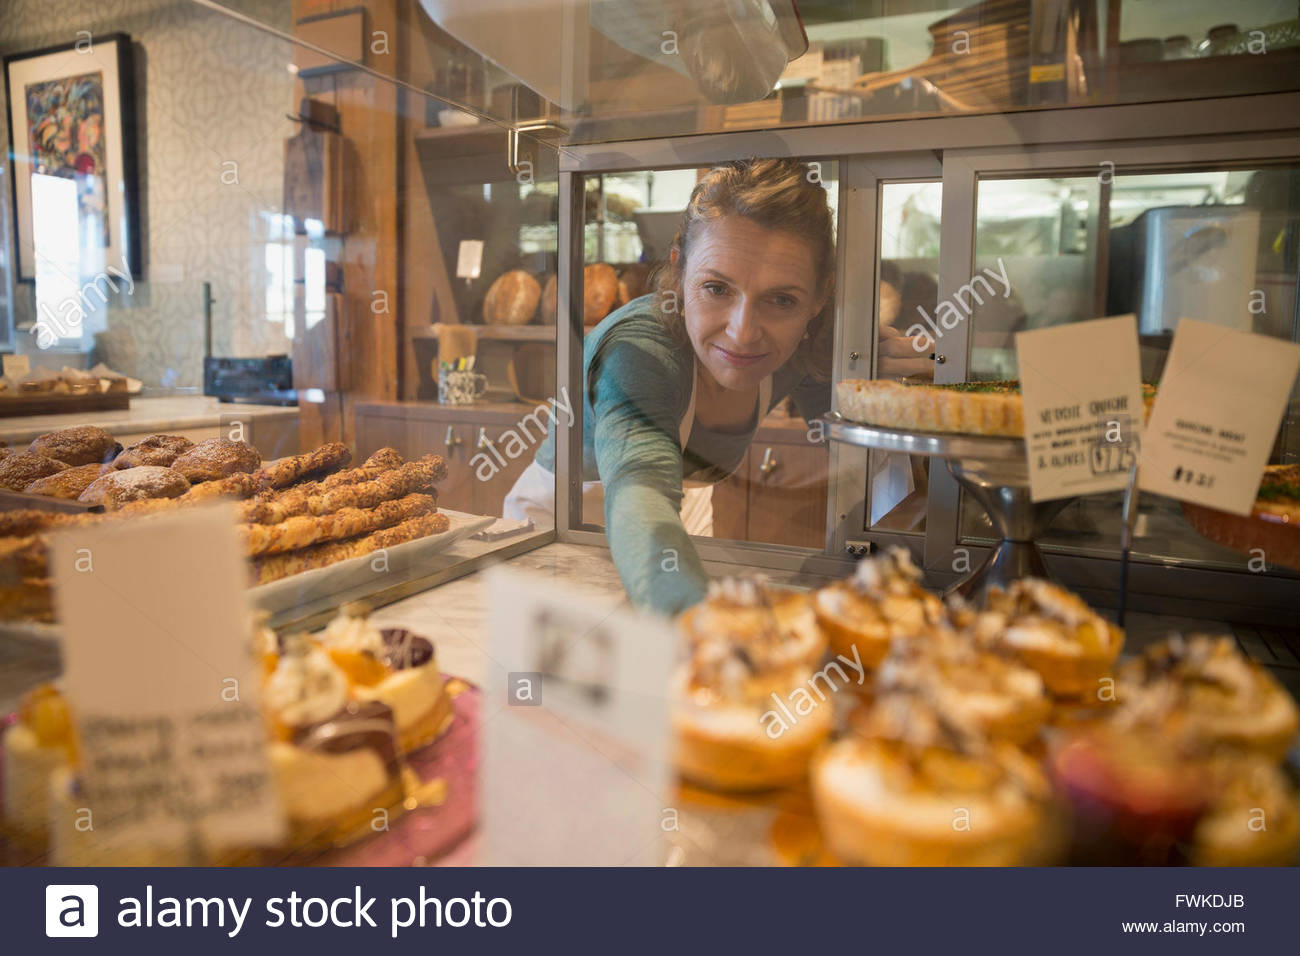 Bakery owner reaching for pastries in display case - Stock Image